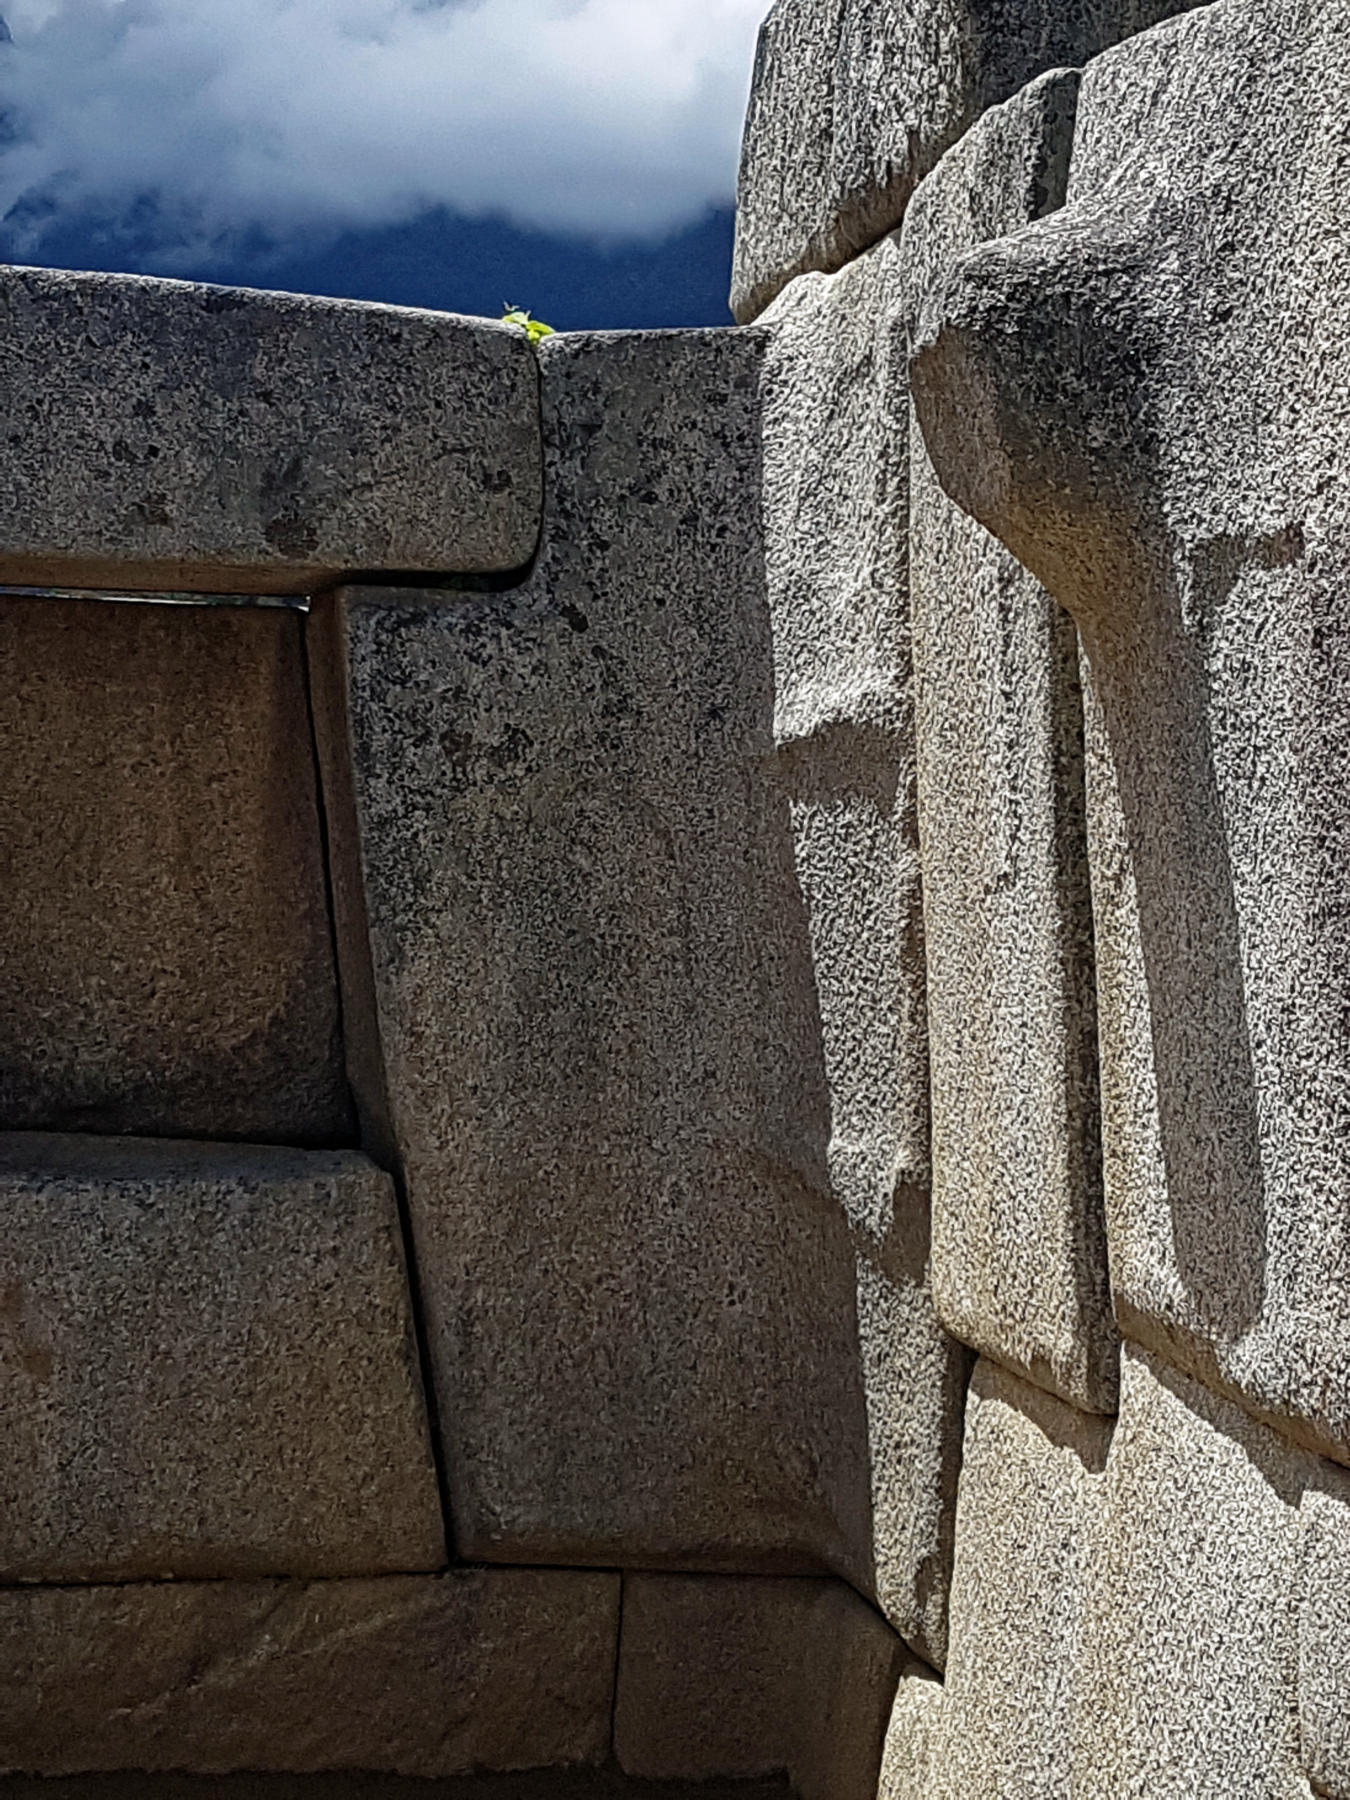 Detailed Inca stonework in Machu Picchu